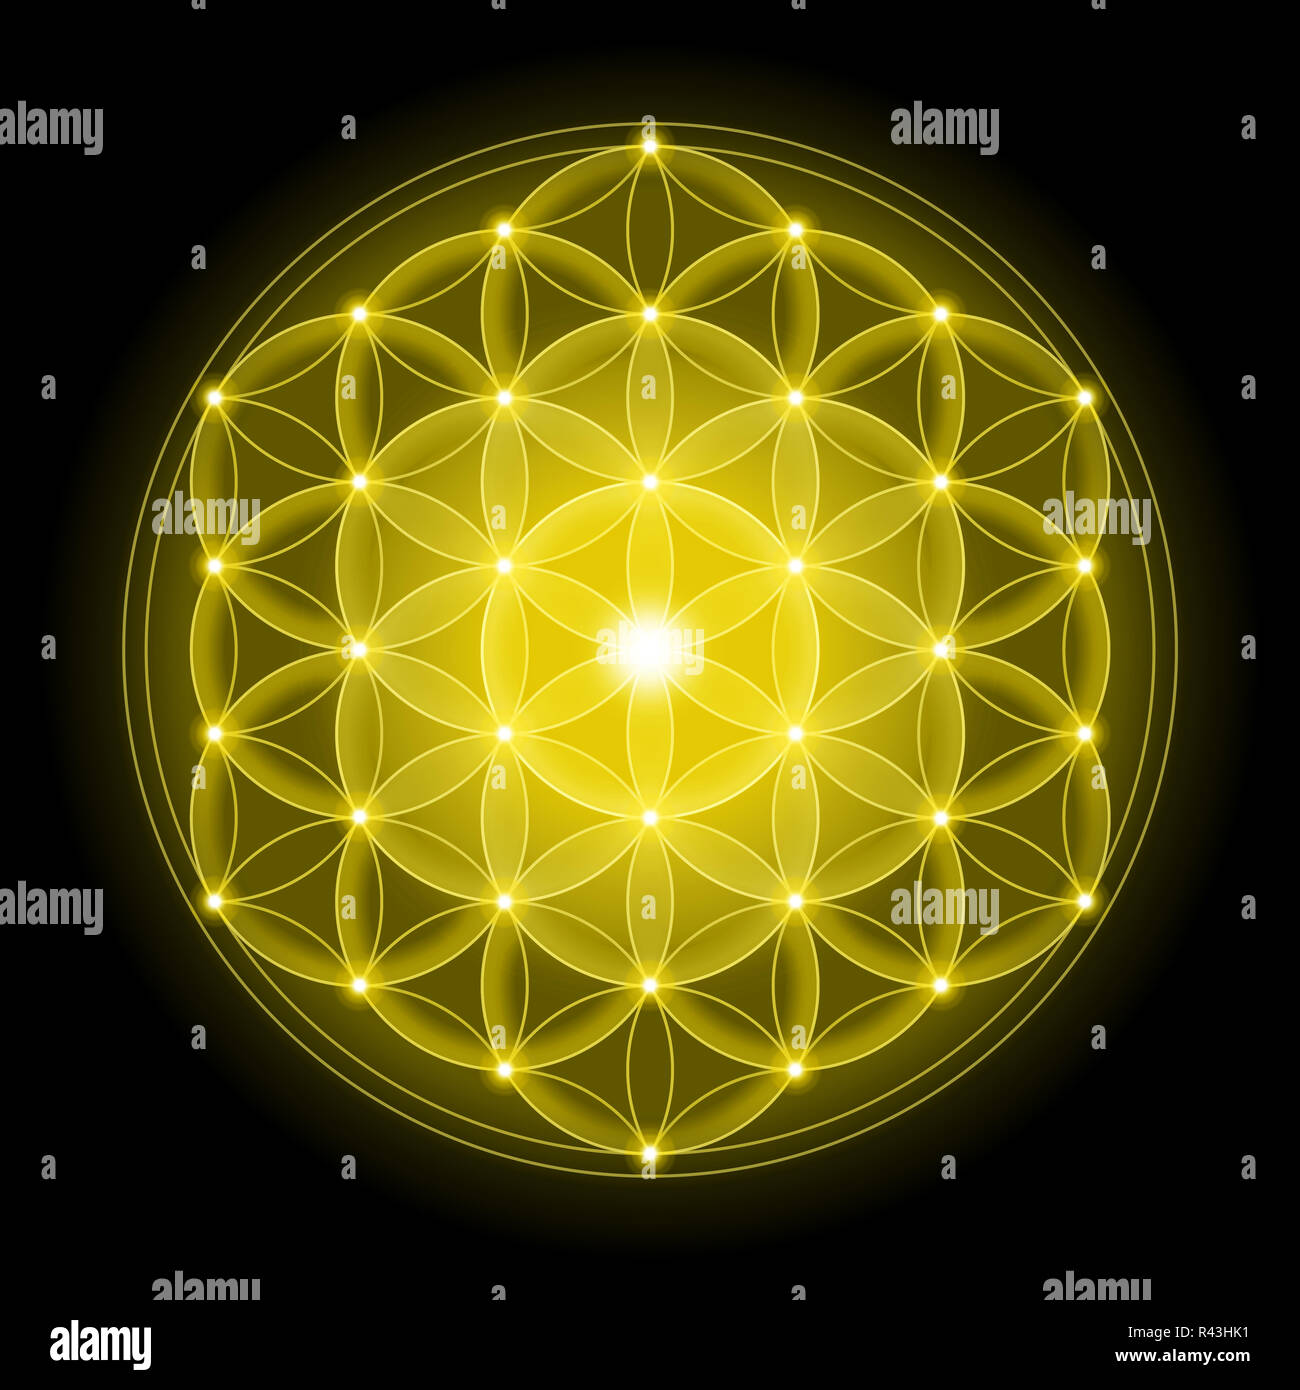 Golden Flower of Life on Black Background - Stock Image